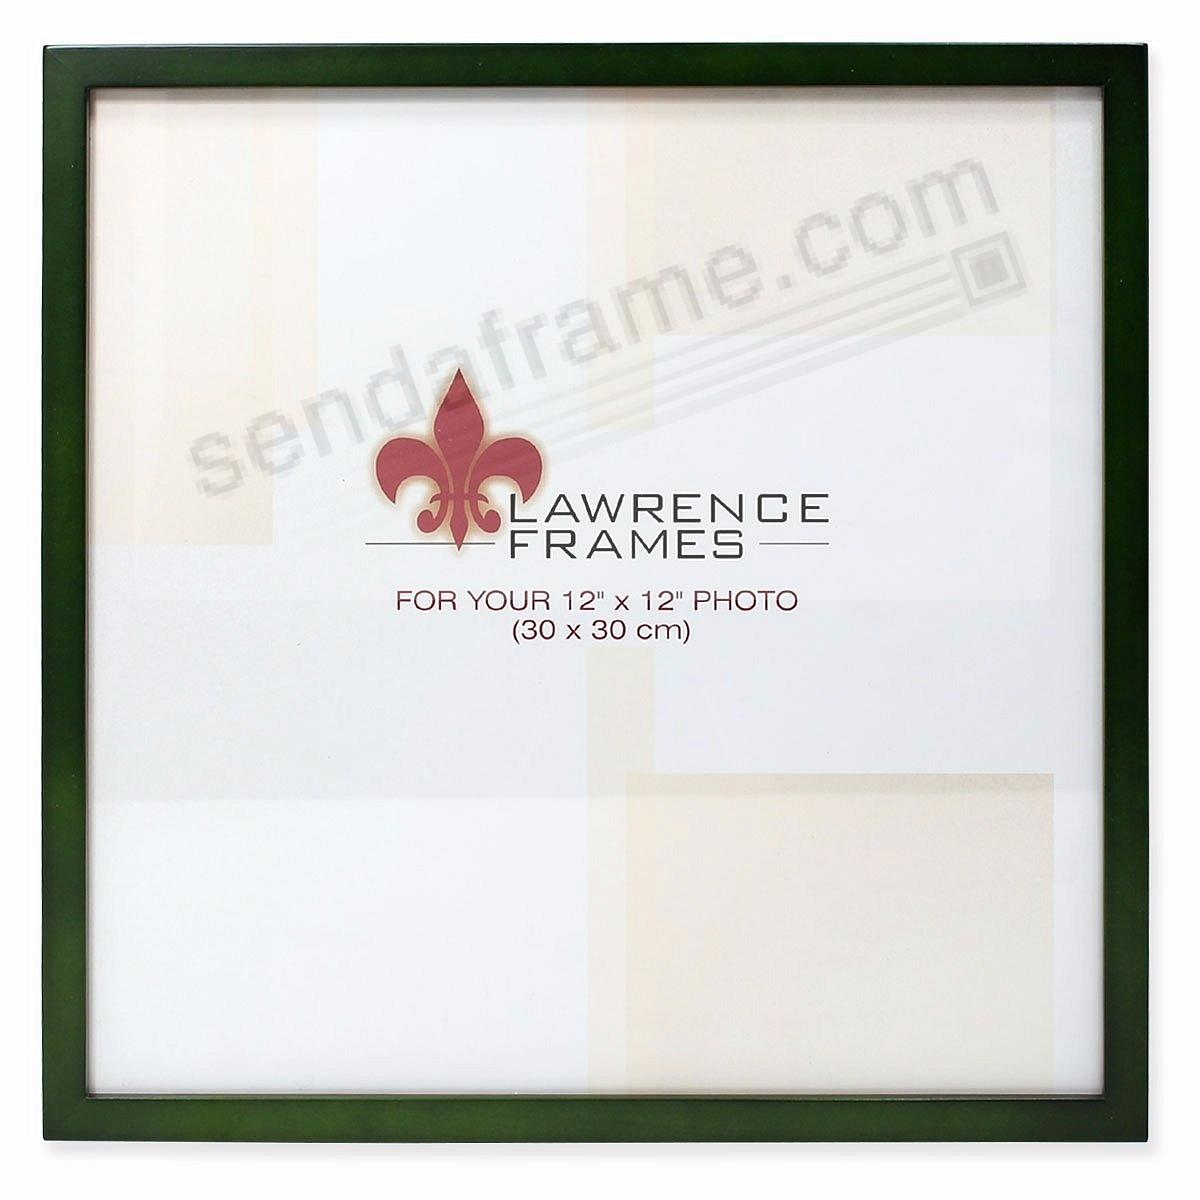 SQUARE CORNER Green Stain classic 12x12 frame by Lawrence Frames®